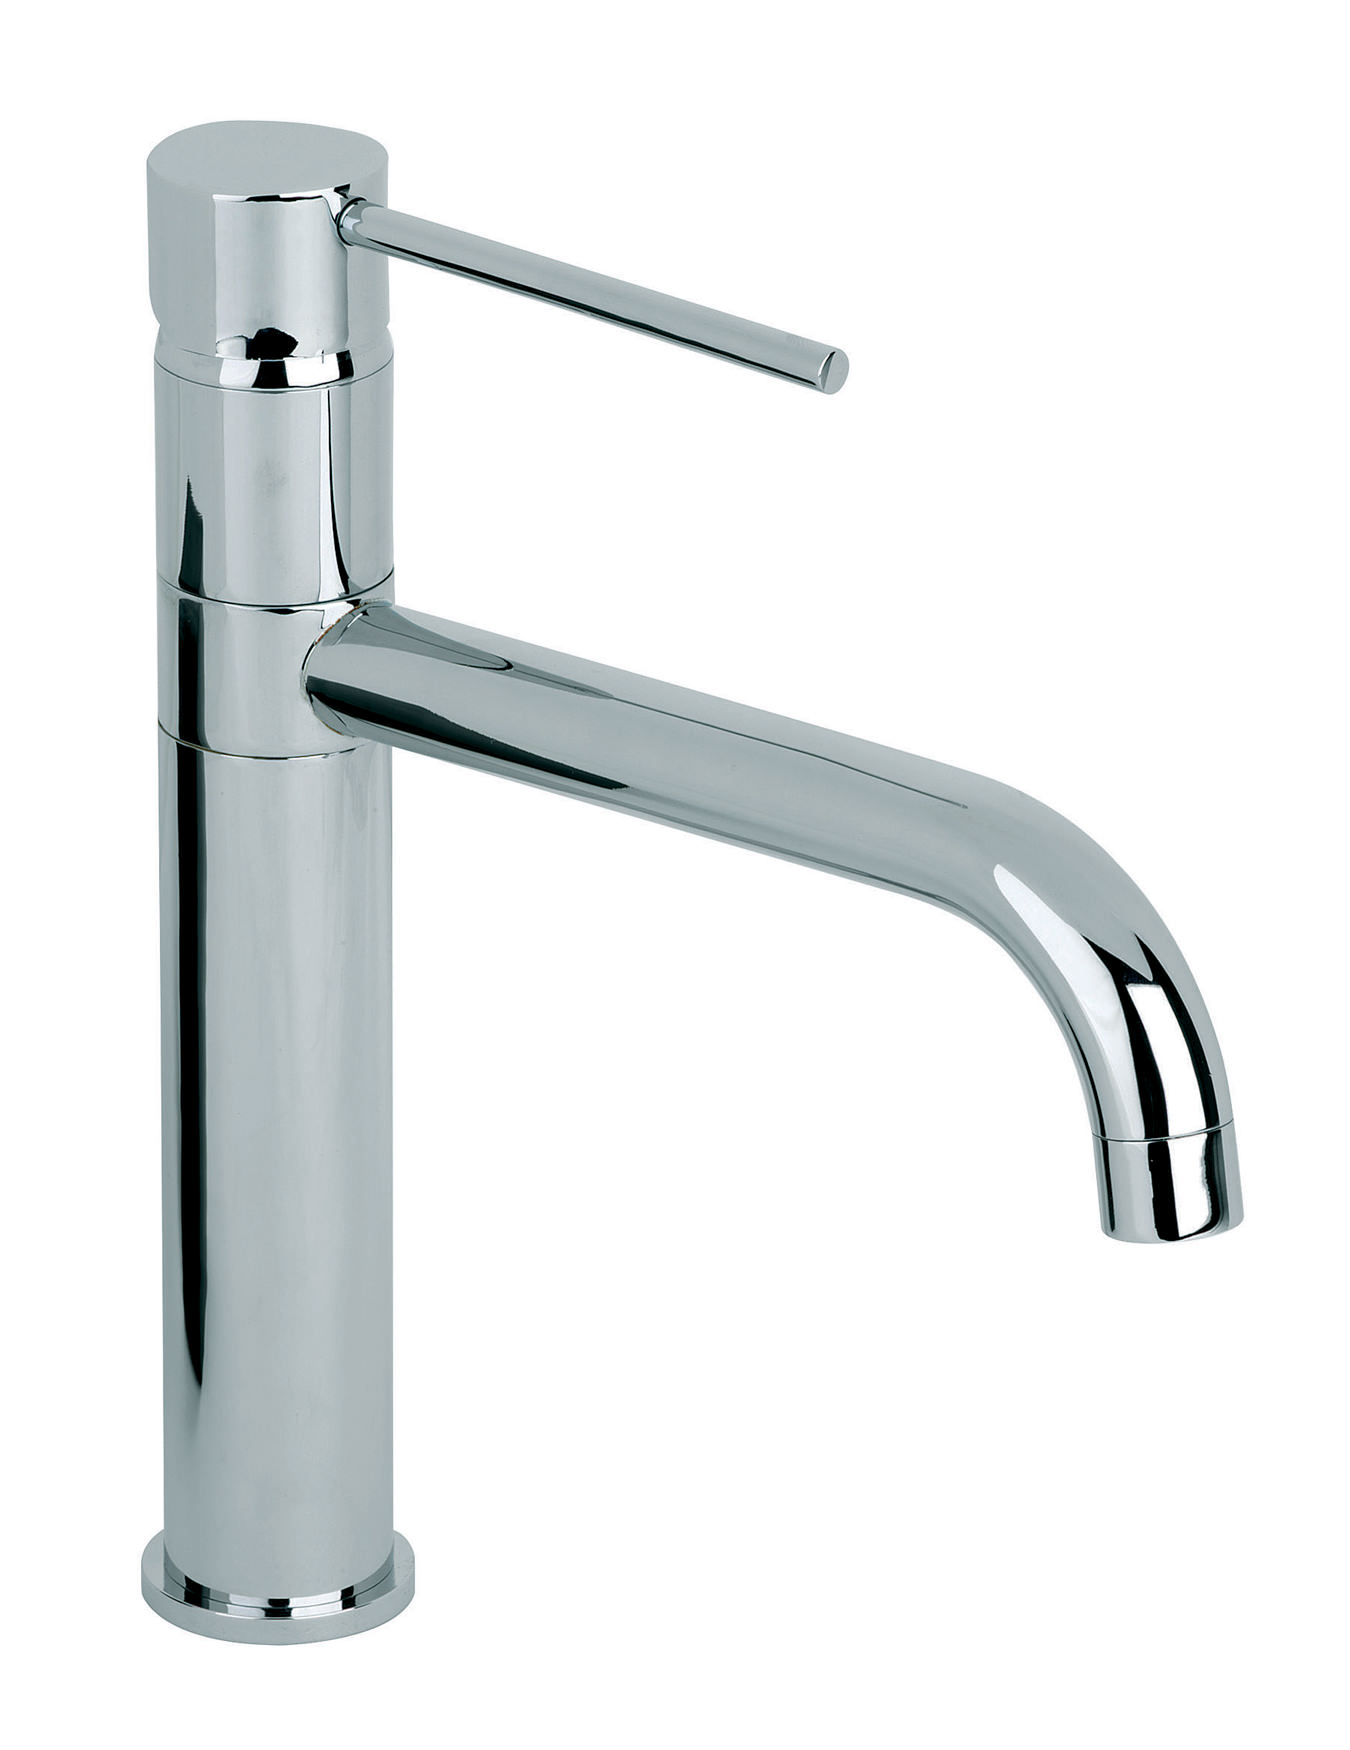 Mayfair Ascot Monobloc Kitchen Sink Mixer Tap With Swivel ...